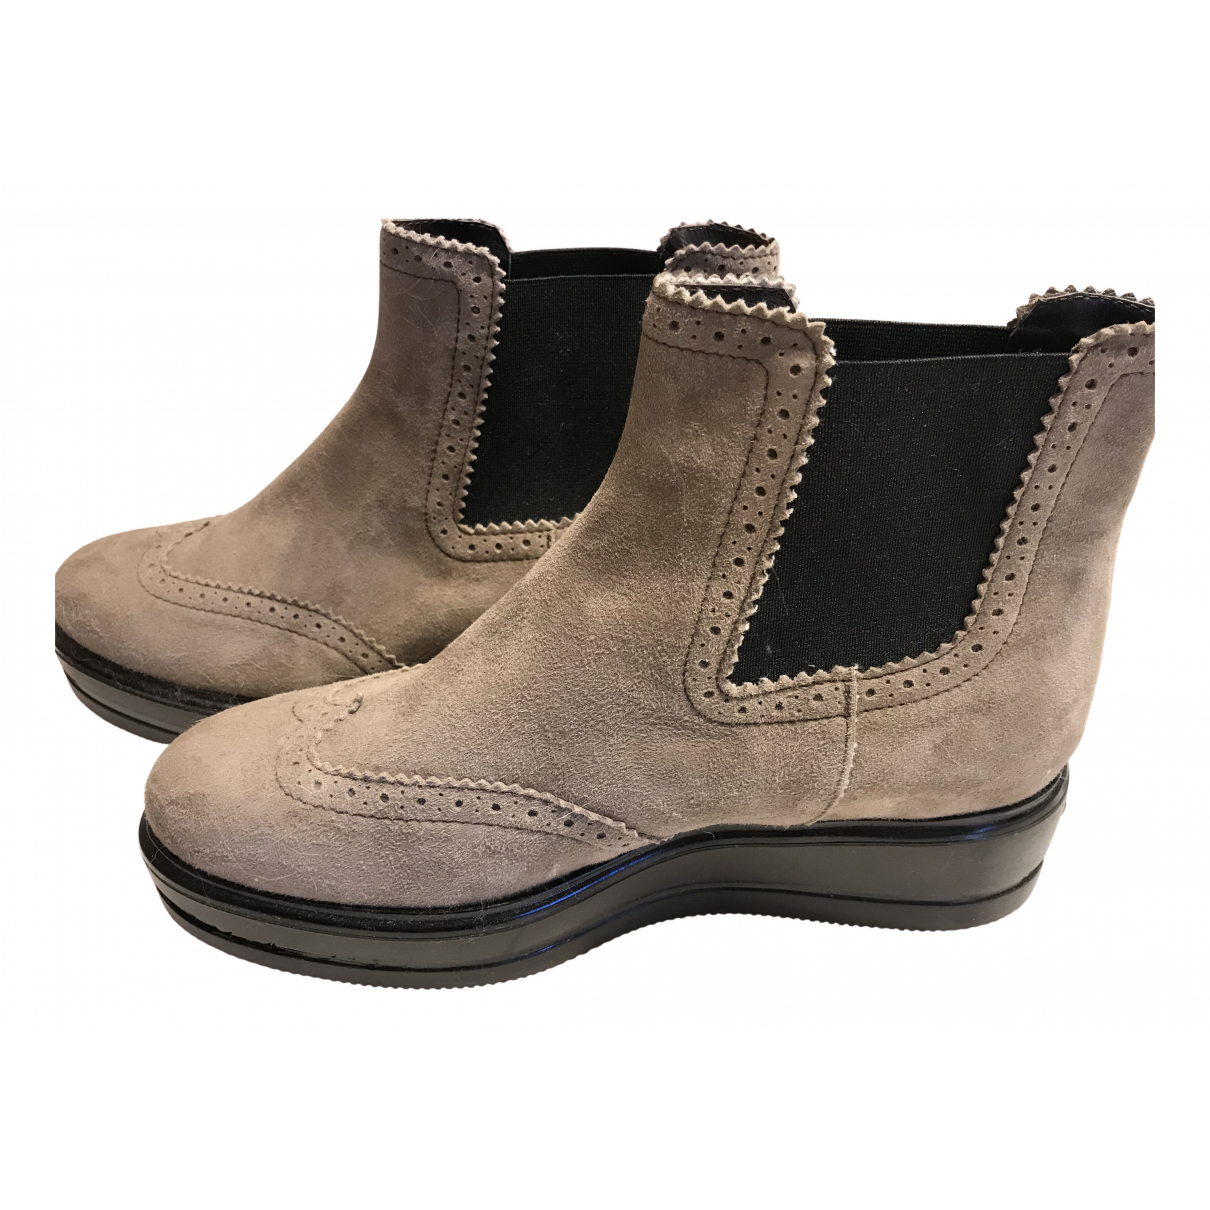 Hogan N Beige Leather Ankle boots for Women 37 EU